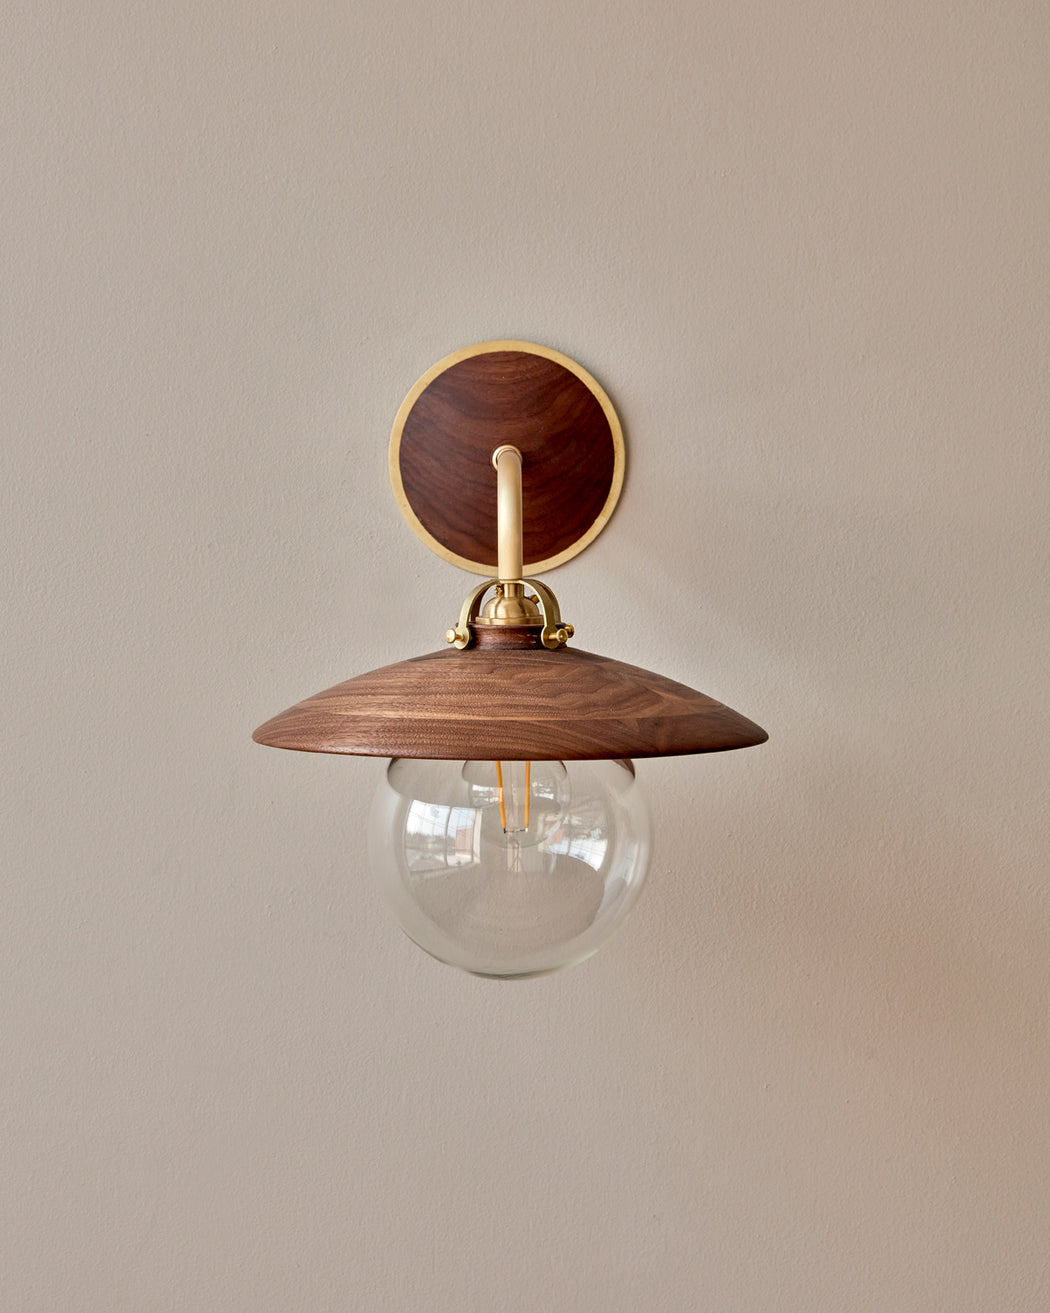 Black walnut and brass Edmund Wall Sconce.  Hardwired lighting made by hand by Lostine in Philadelphia, Pennsylvania.  Simple Interior Design lighting